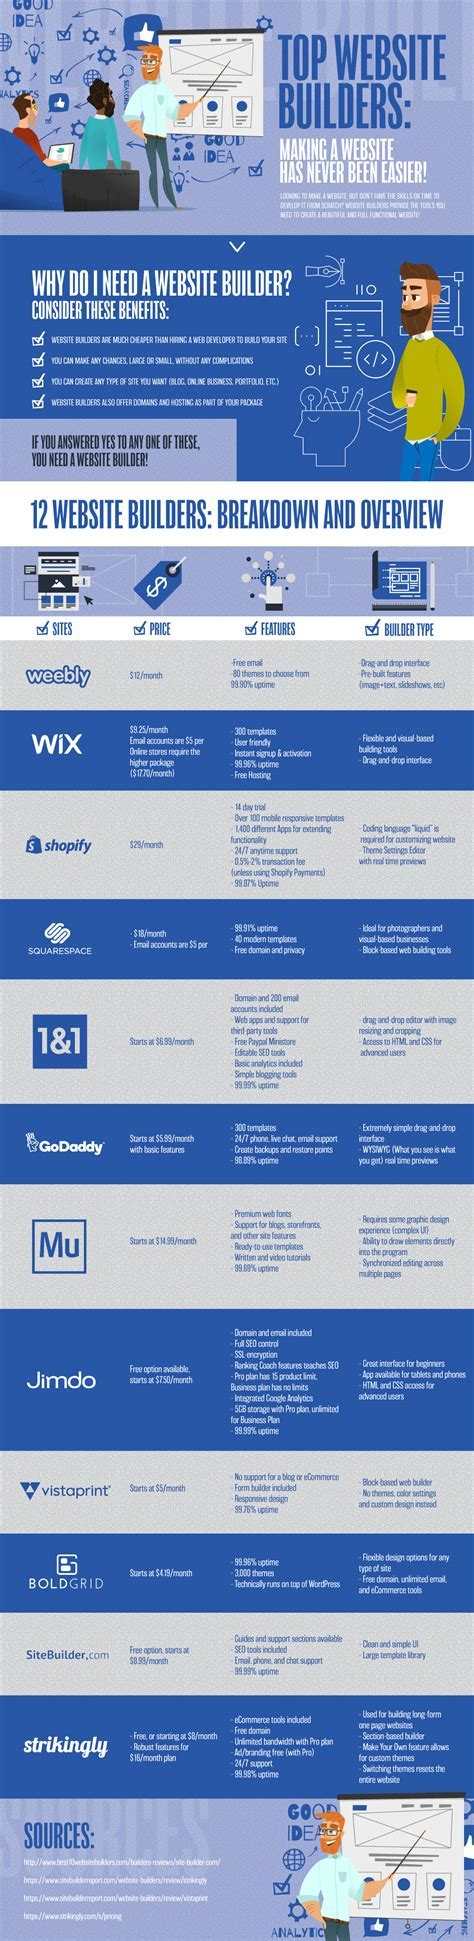 12 Best Website Builders Tested & Reviewed [INFOGRAPHIC]